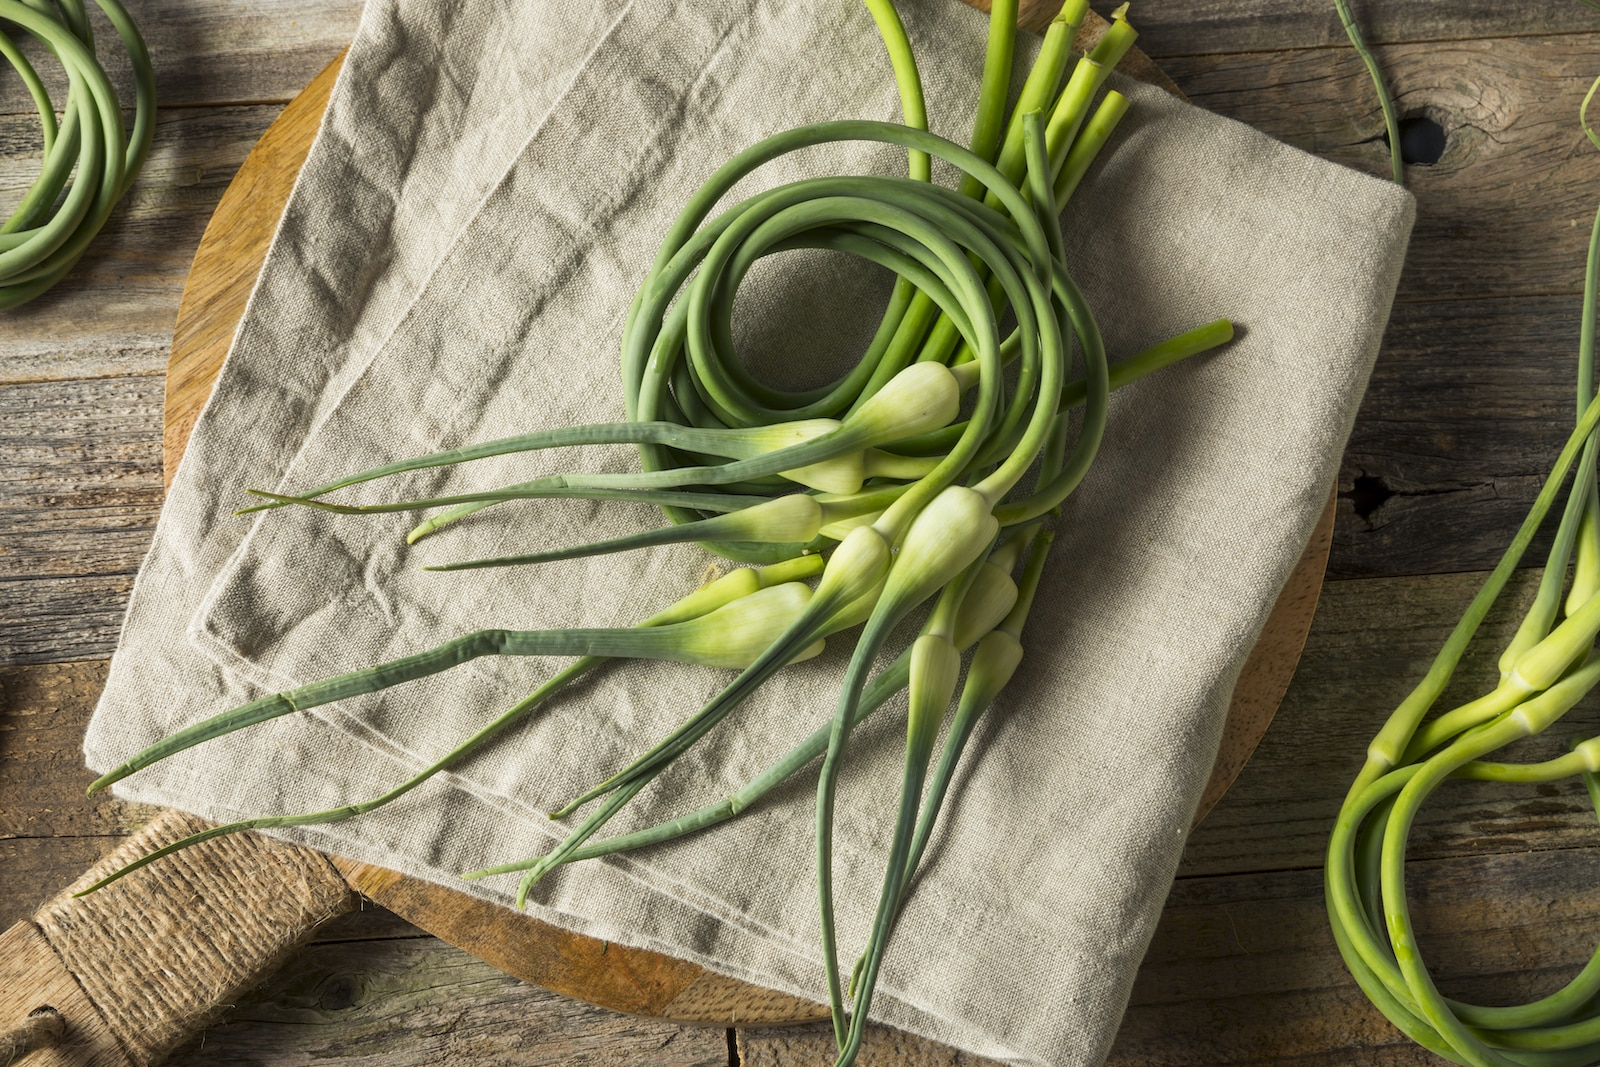 Storing garlic scapes